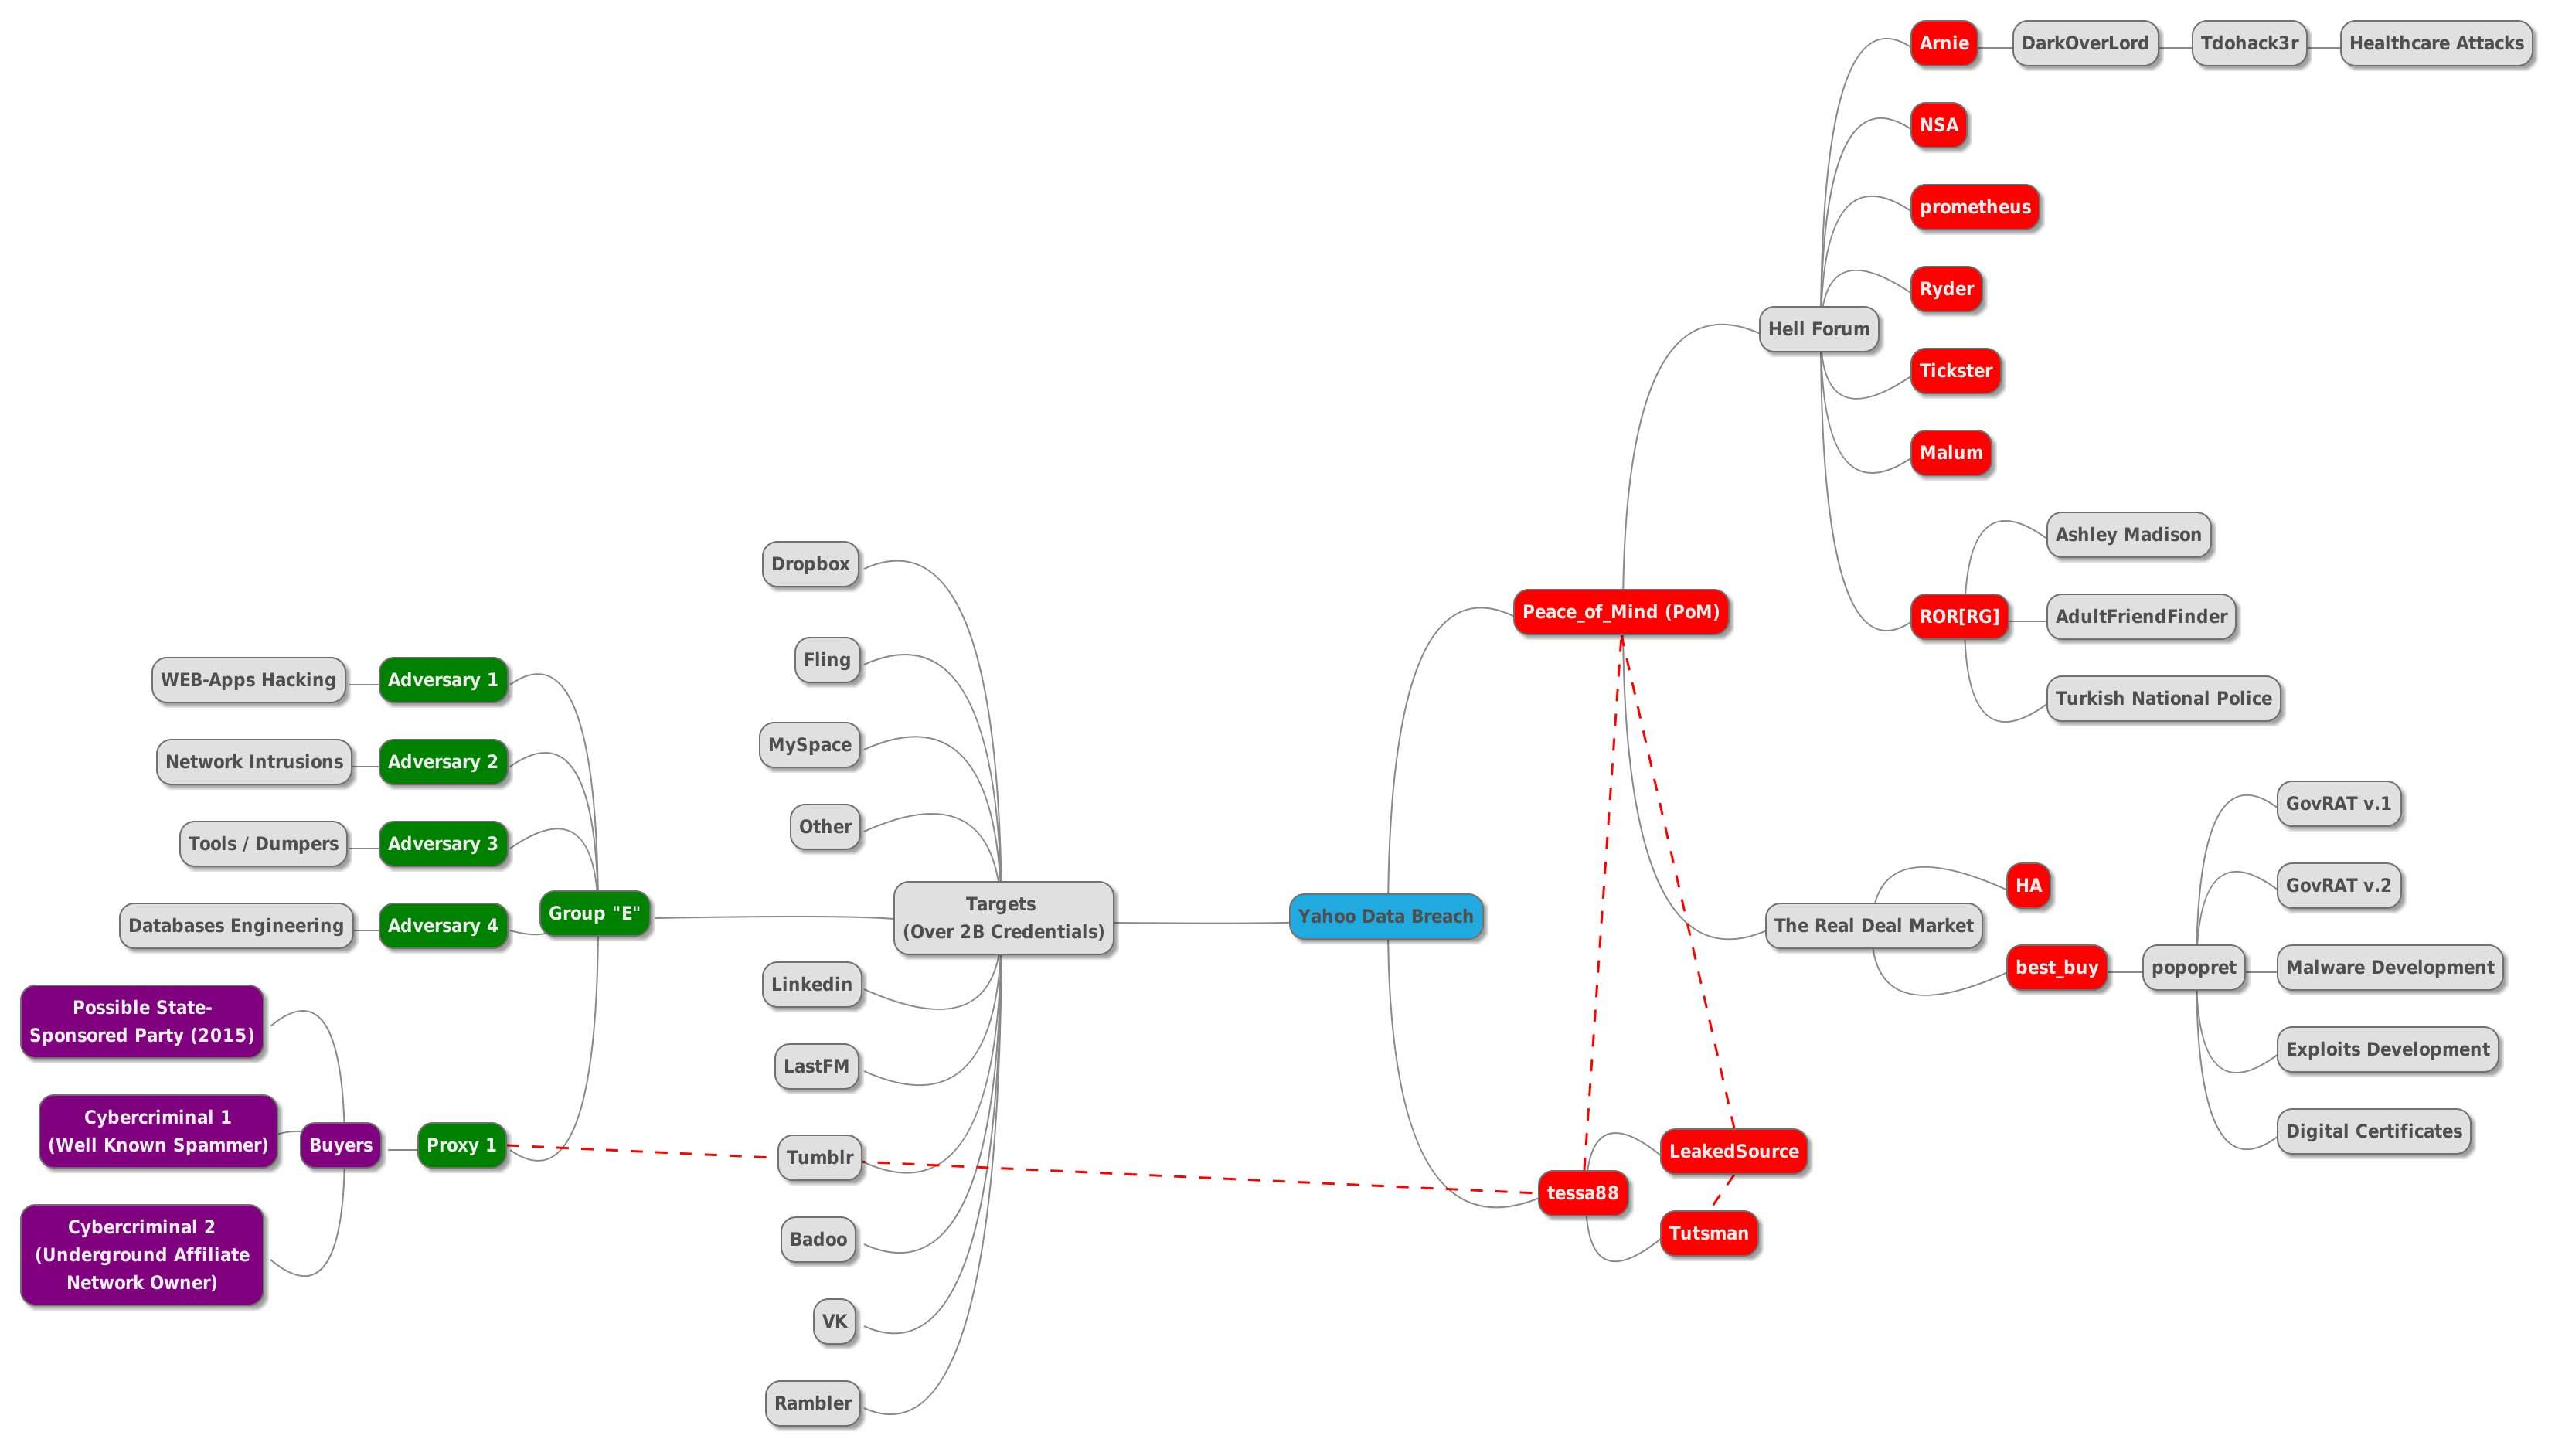 Hacking gangs Group E, For Hell, and broker Tessa88. Mind map by Andrew Komarov.